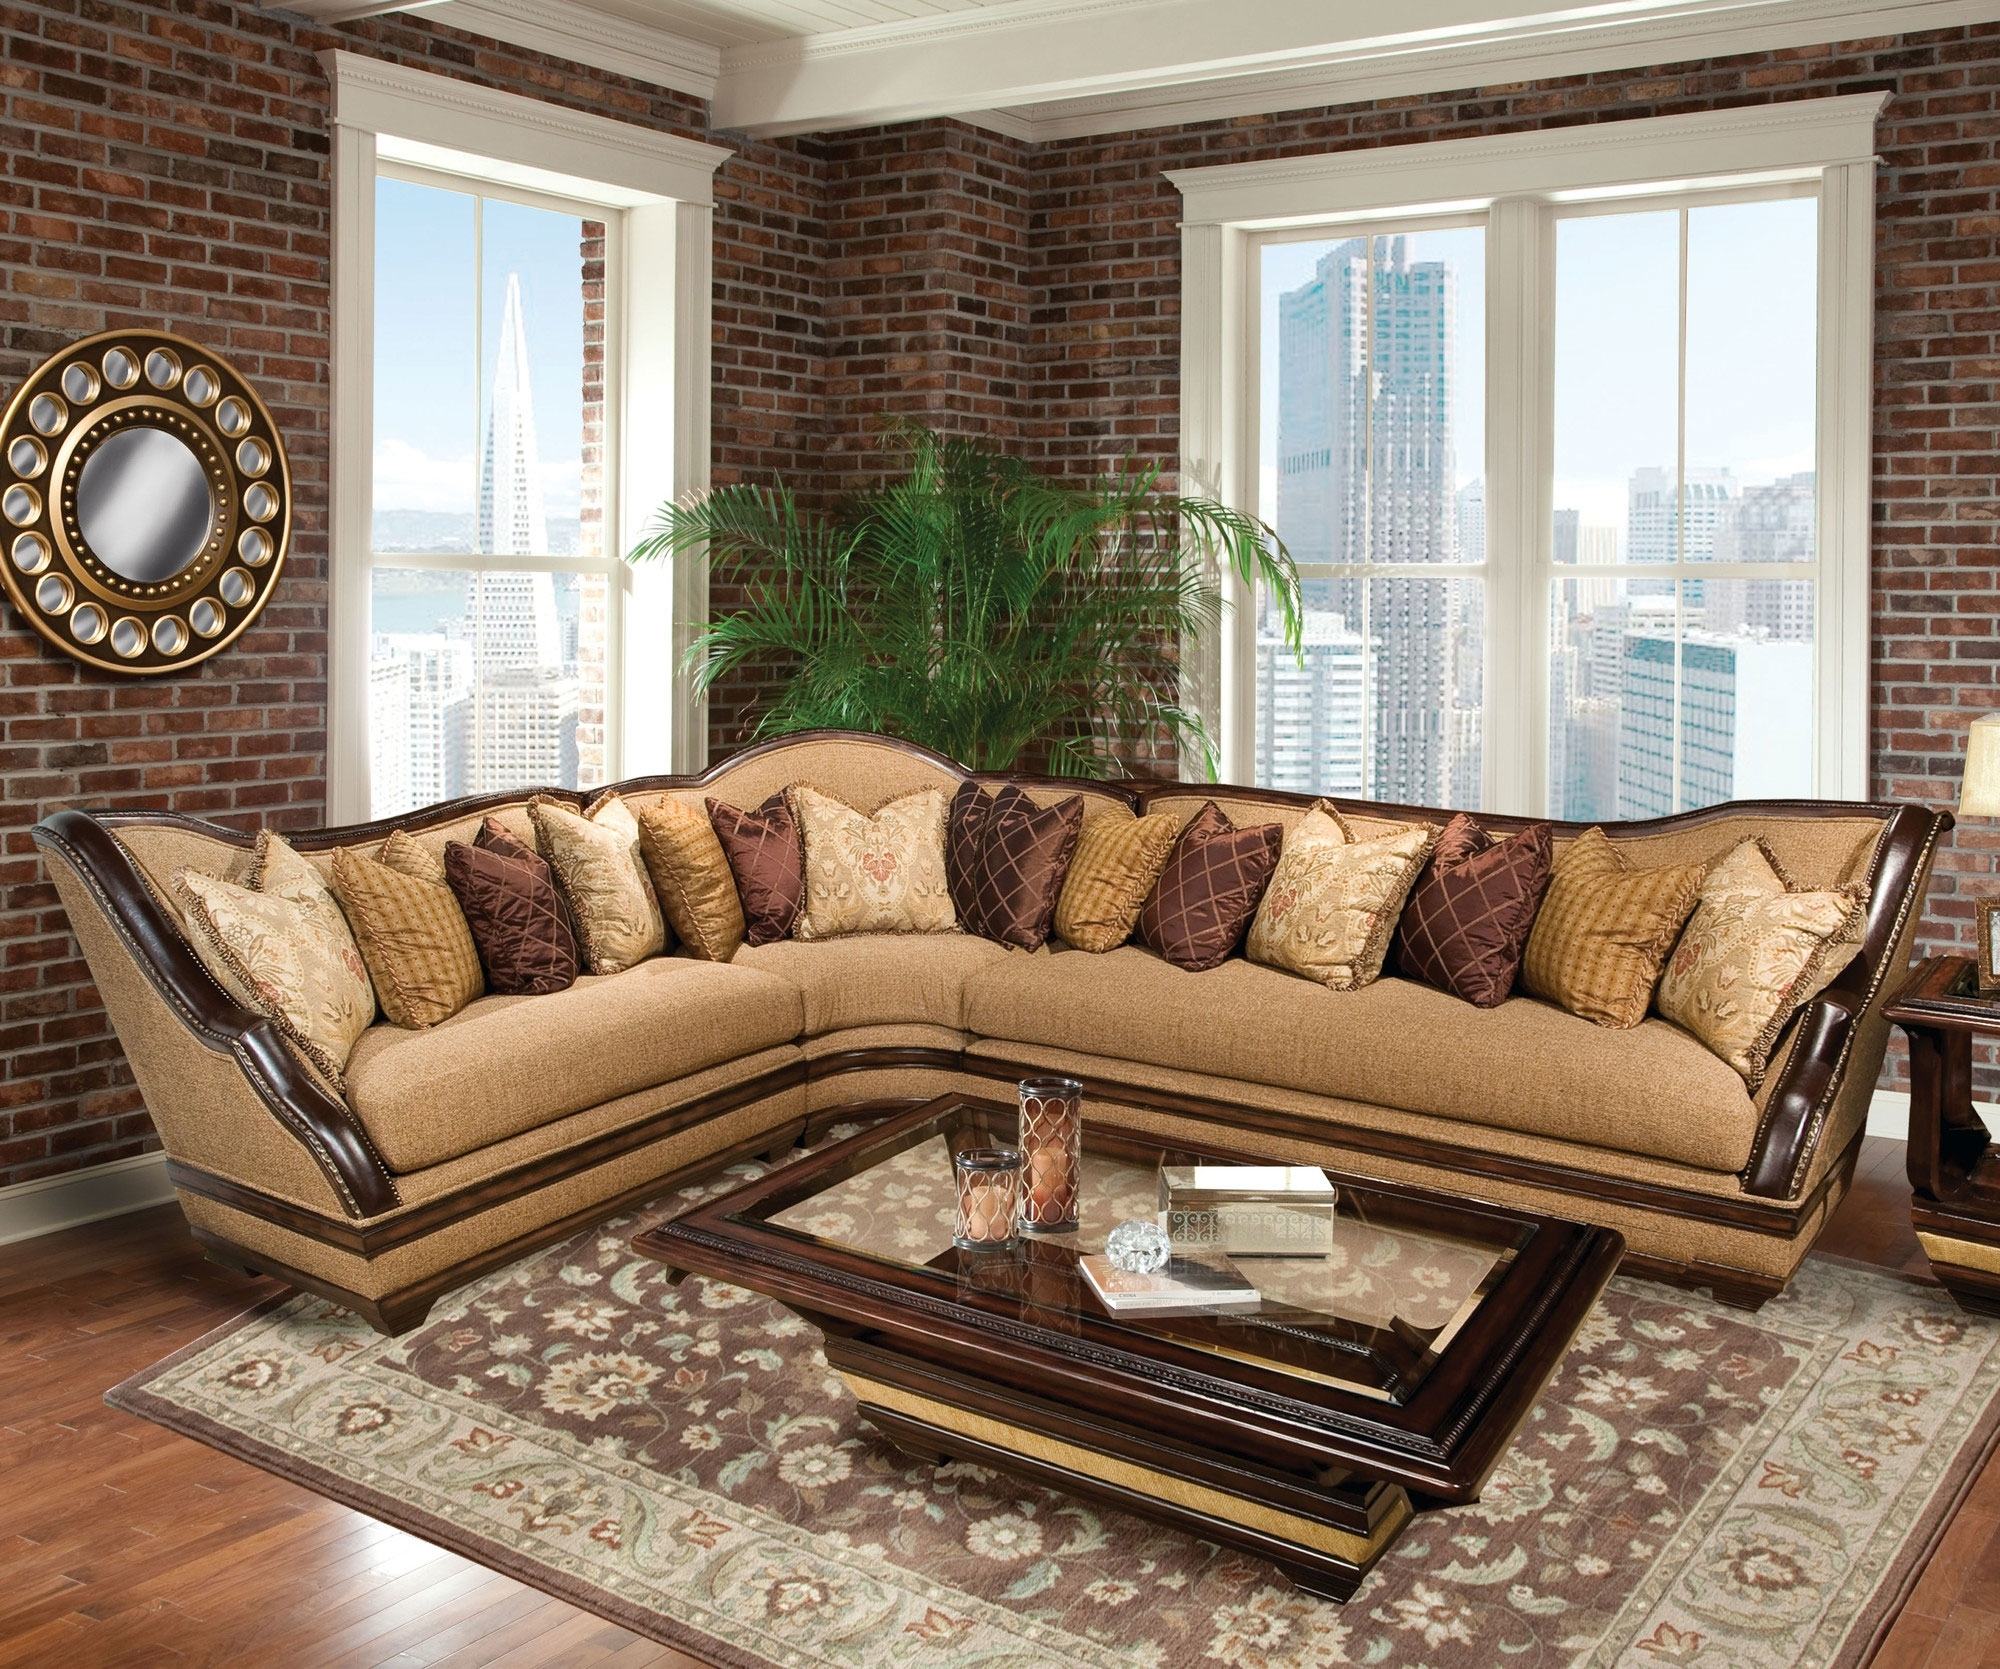 Italian Leather Sofa With Wood Trim: 10 Collection Of Luxury Sectional Sofas